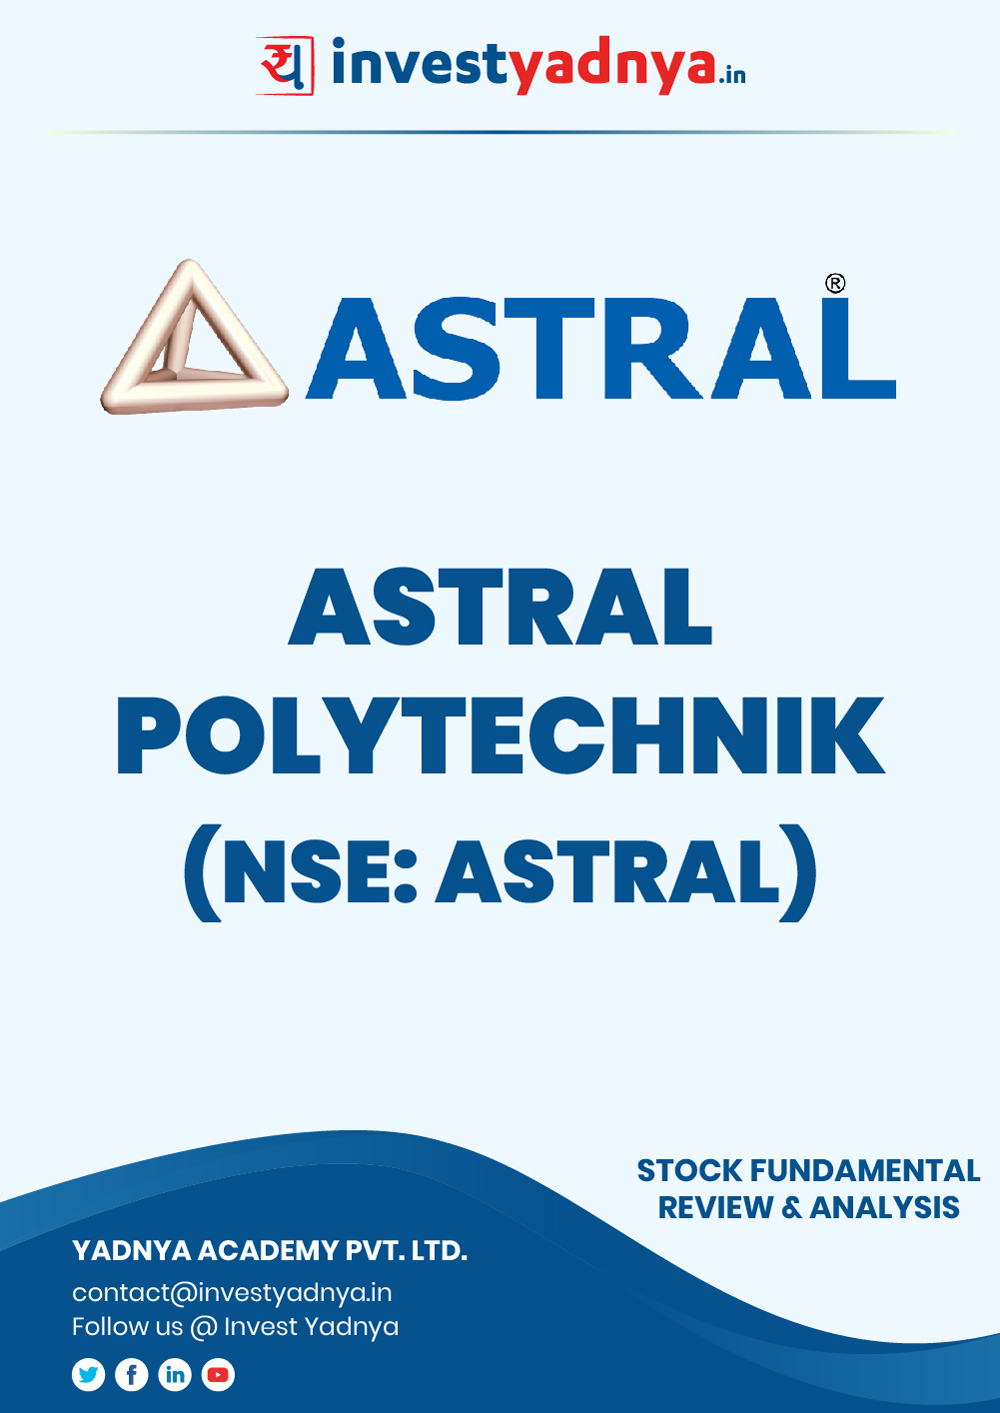 Astral Poly Technik Ltd. company/Stock Review & Analysis based on Q22019-20 and FY2018-19 data. The book contains Fundamental Analysis of the company considering both Quantitative (Financial) and Qualitative parameters. Book is updated as on 20th Nov, 2019.